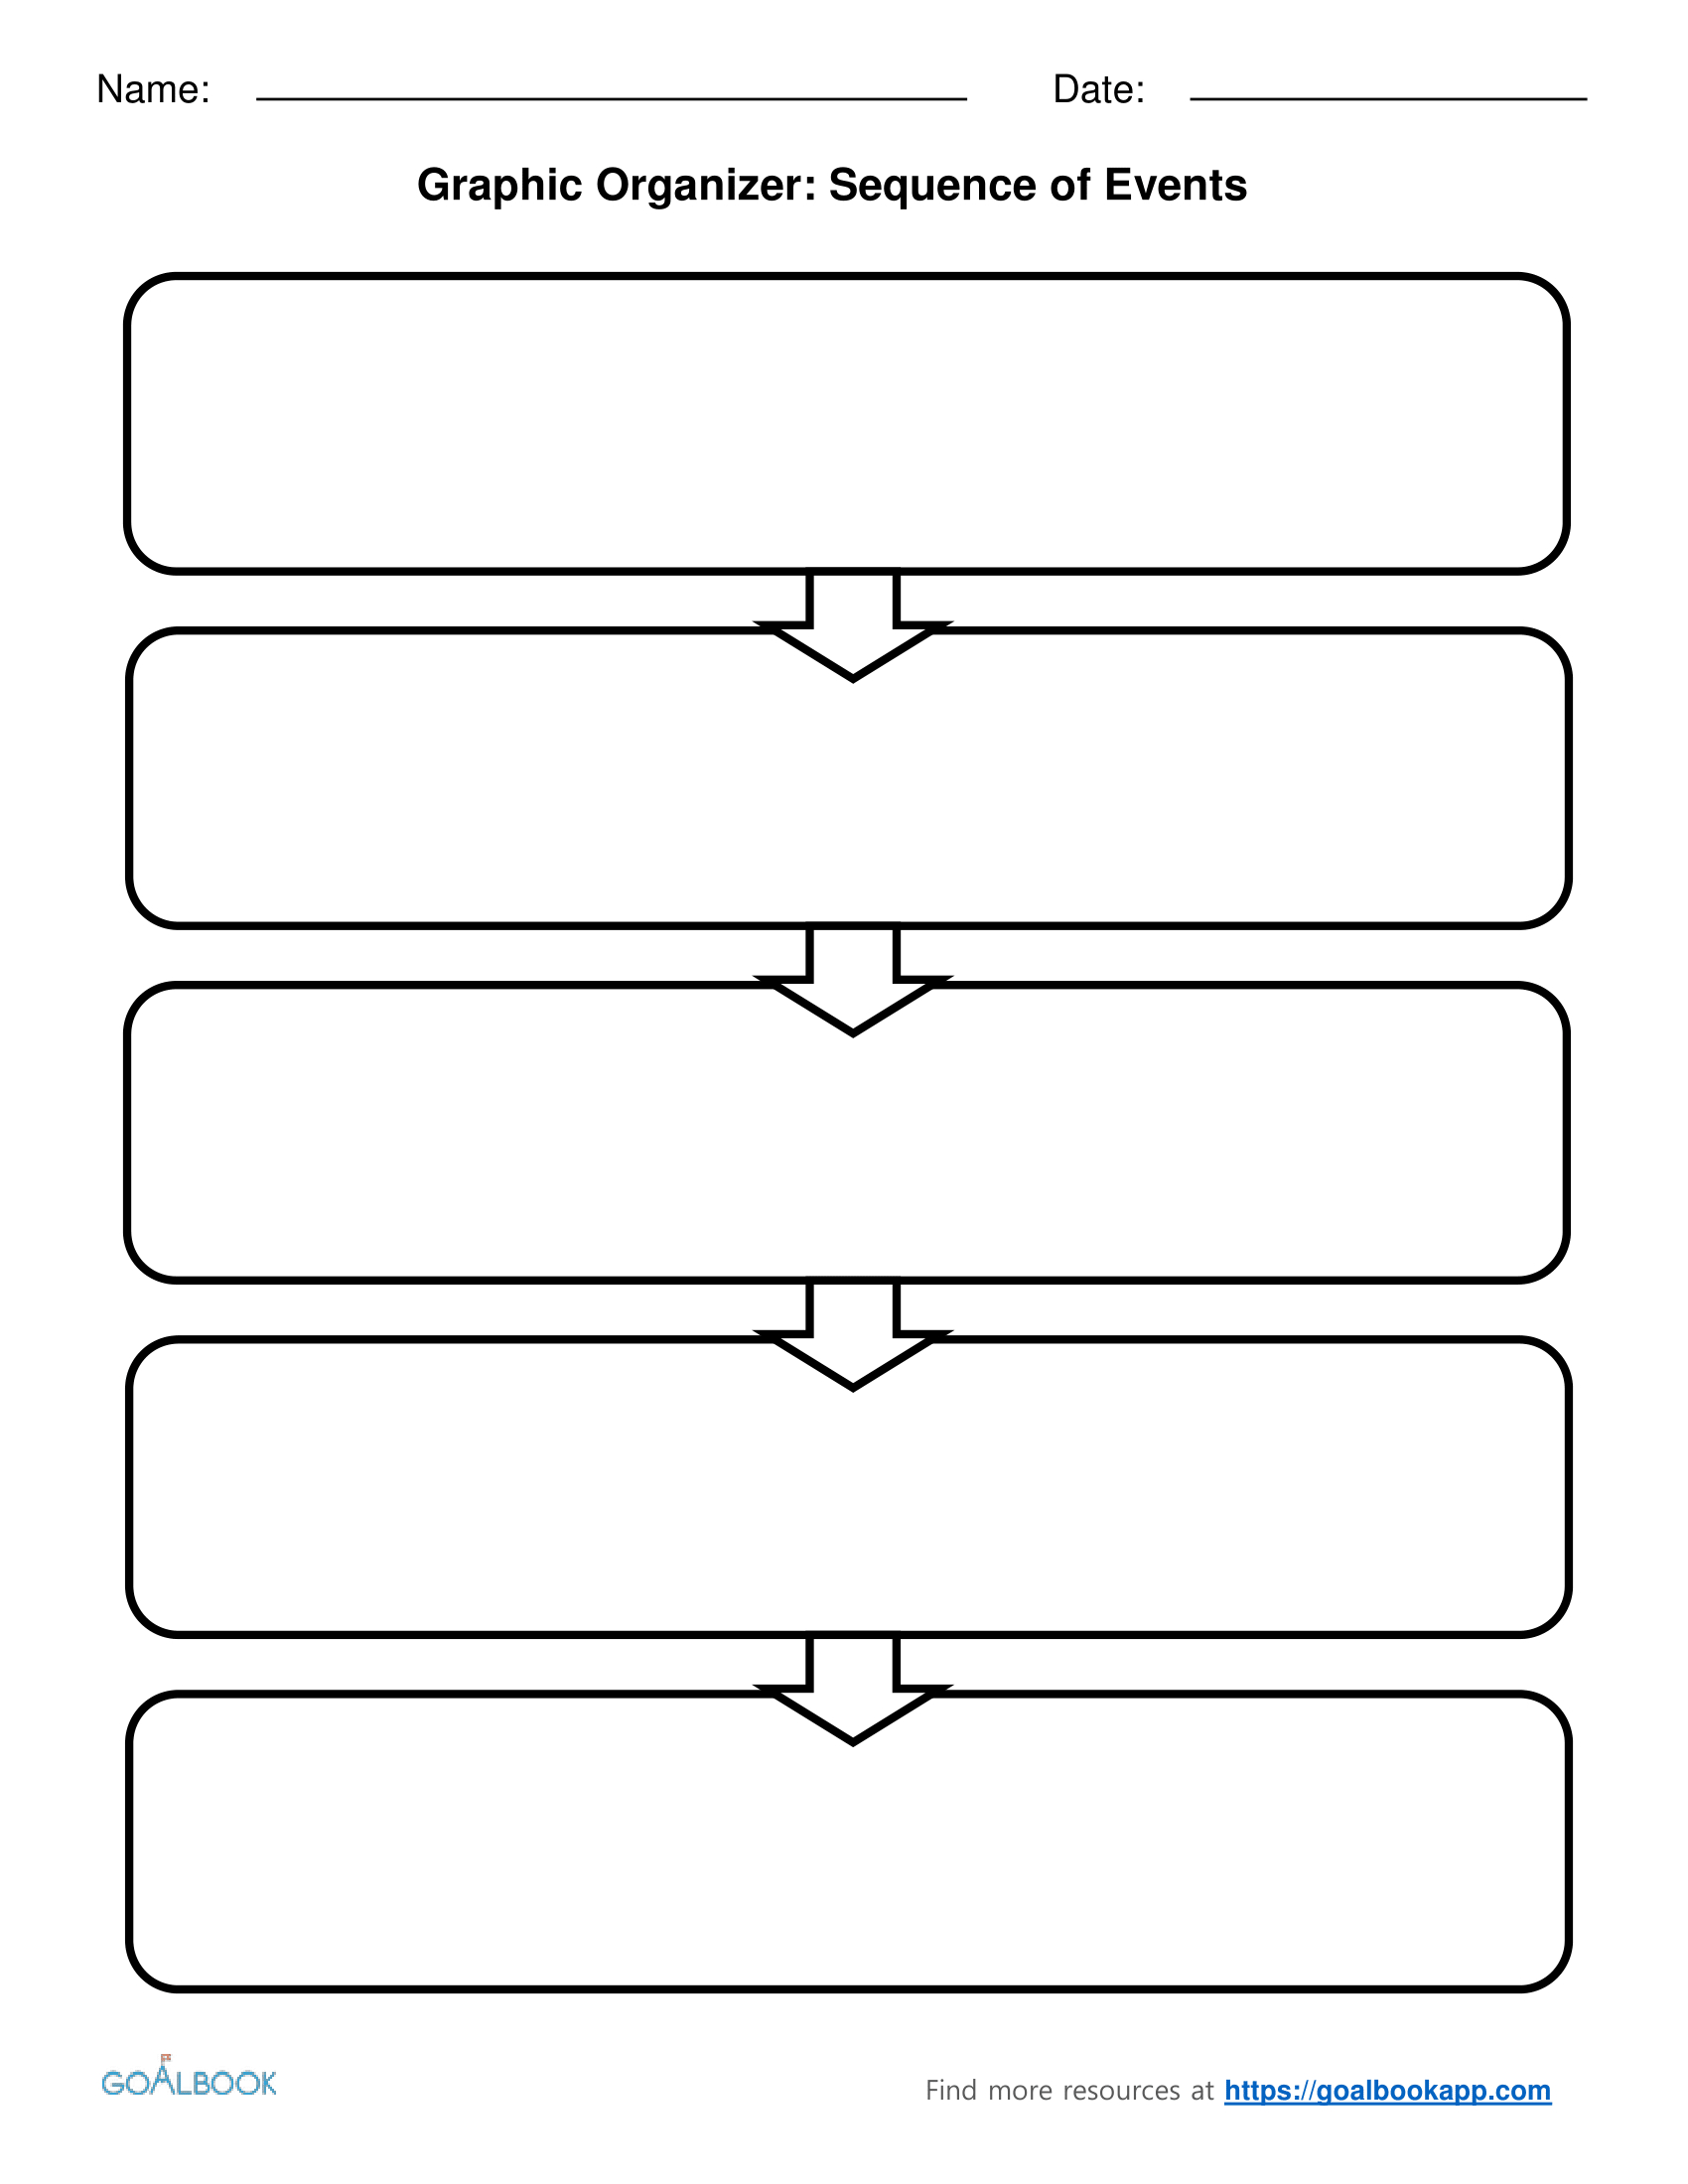 Pinbarbara Warren On Beginning Of The Year | Math Graphic - Free Printable Sequence Of Events Graphic Organizer